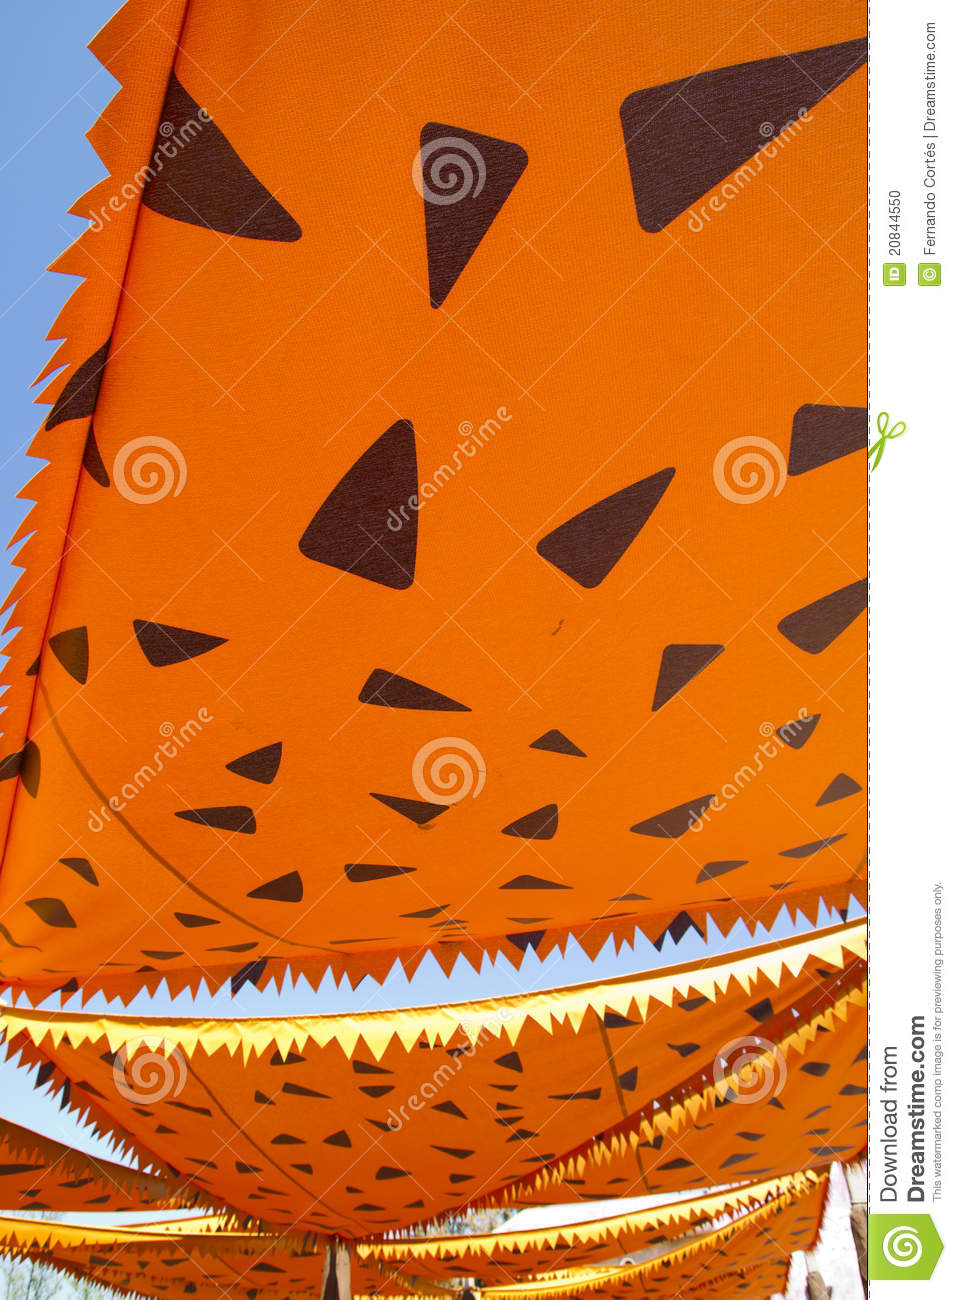 Cartoonish Orange Awning Sunshade Decoration Download Preview